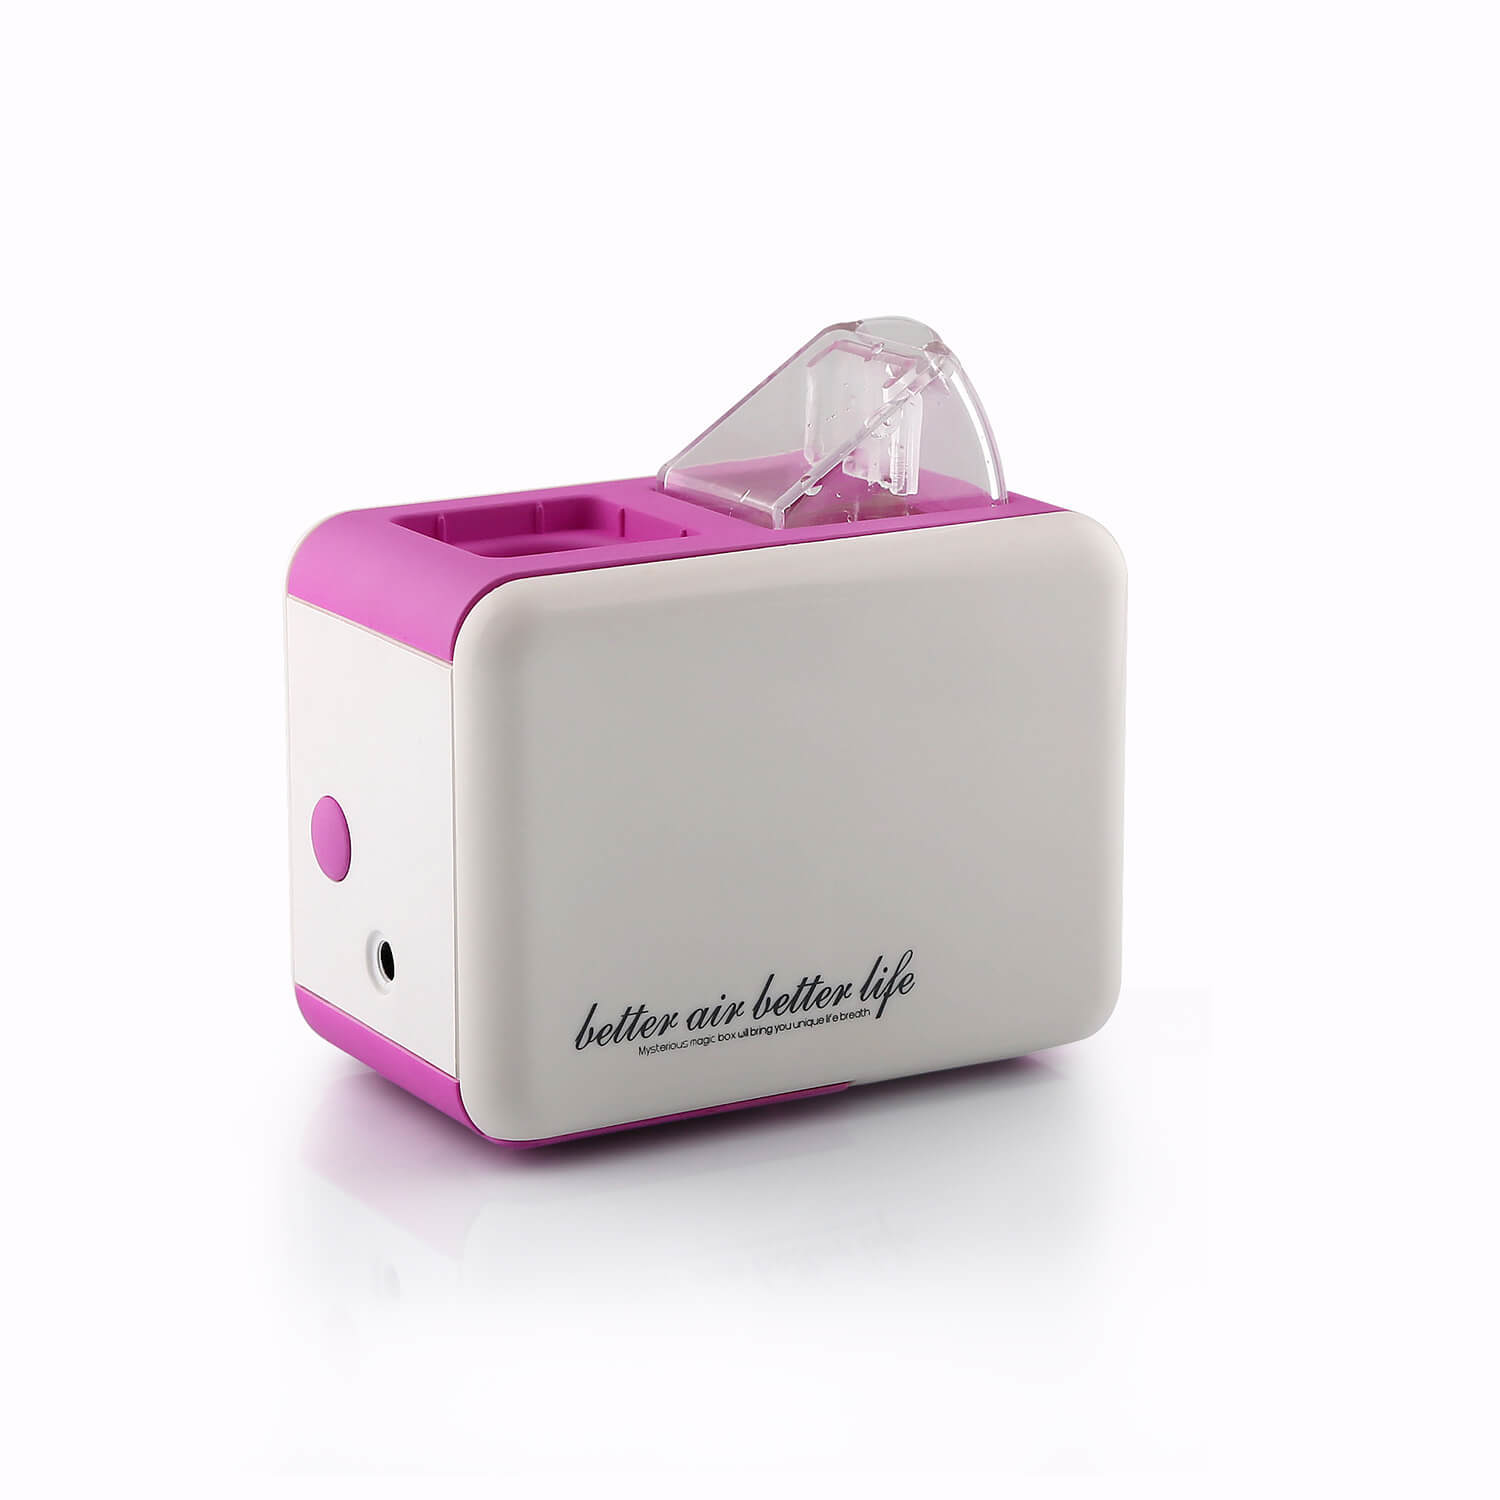 20095-Bottle Portable Air Humidifier Ultrasonic Humidifier